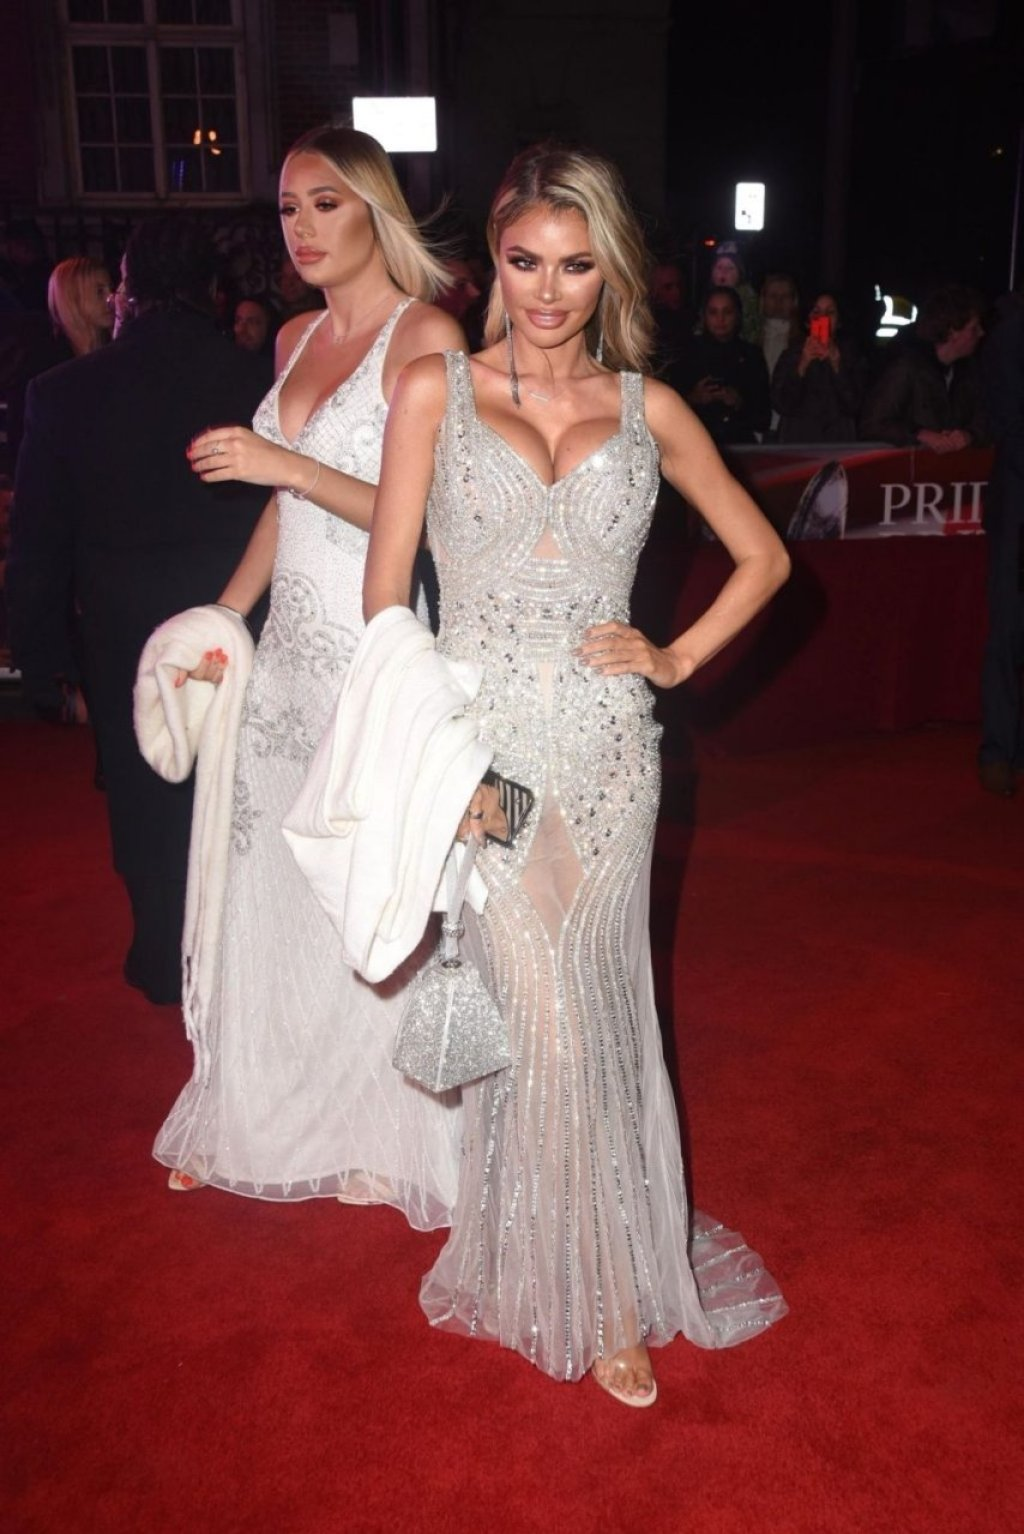 Chloe Sims Sexy (13 Photos + Video)